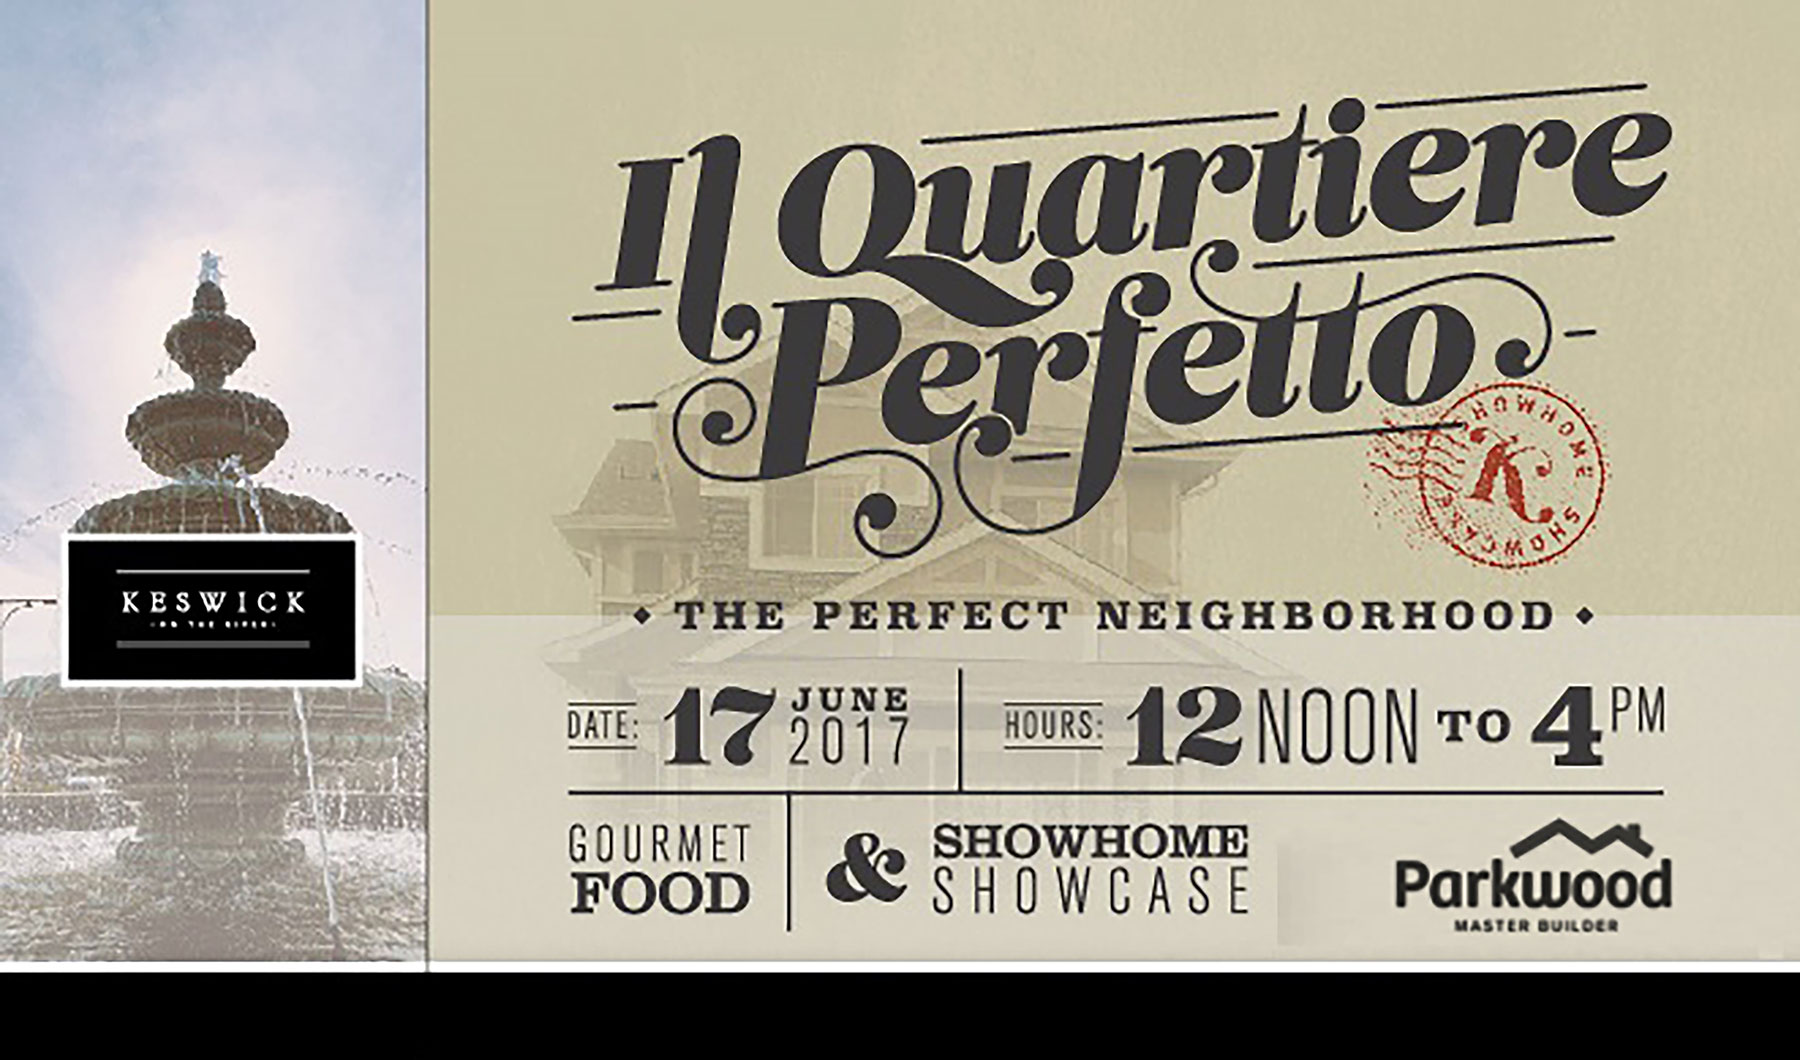 Keswick invites you to 'il quartiere perfetto'